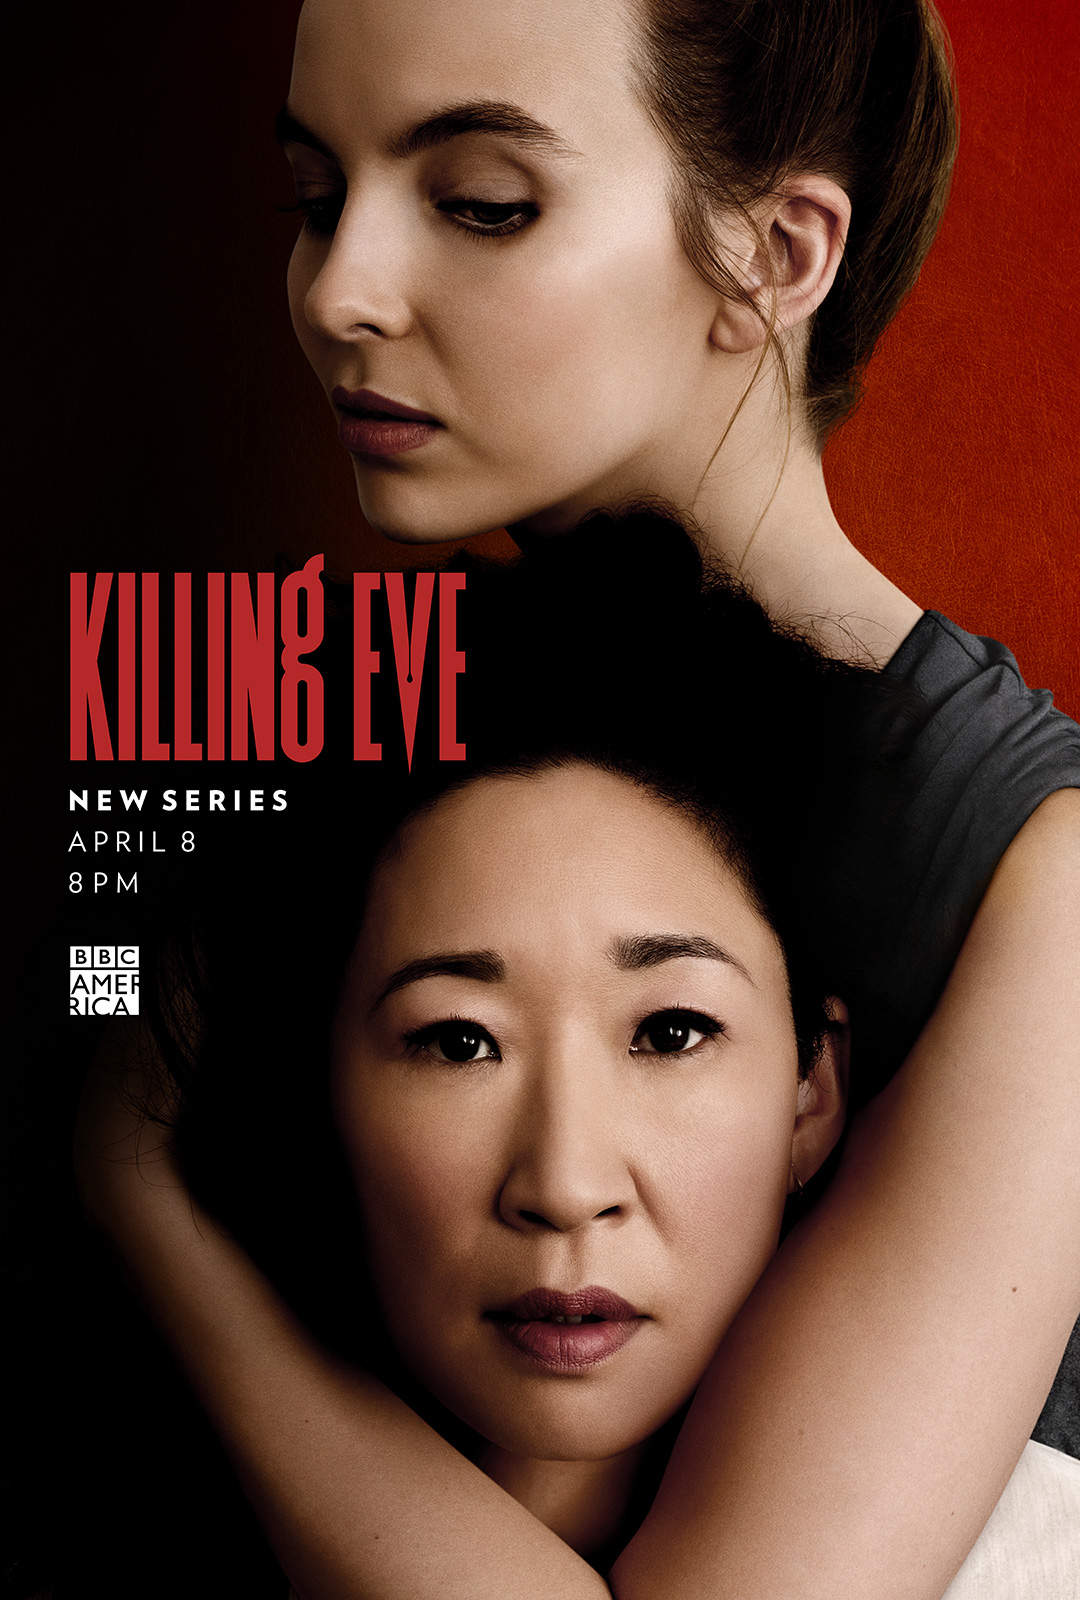 Killing Eve (TV Series 2018– ) - IMDb